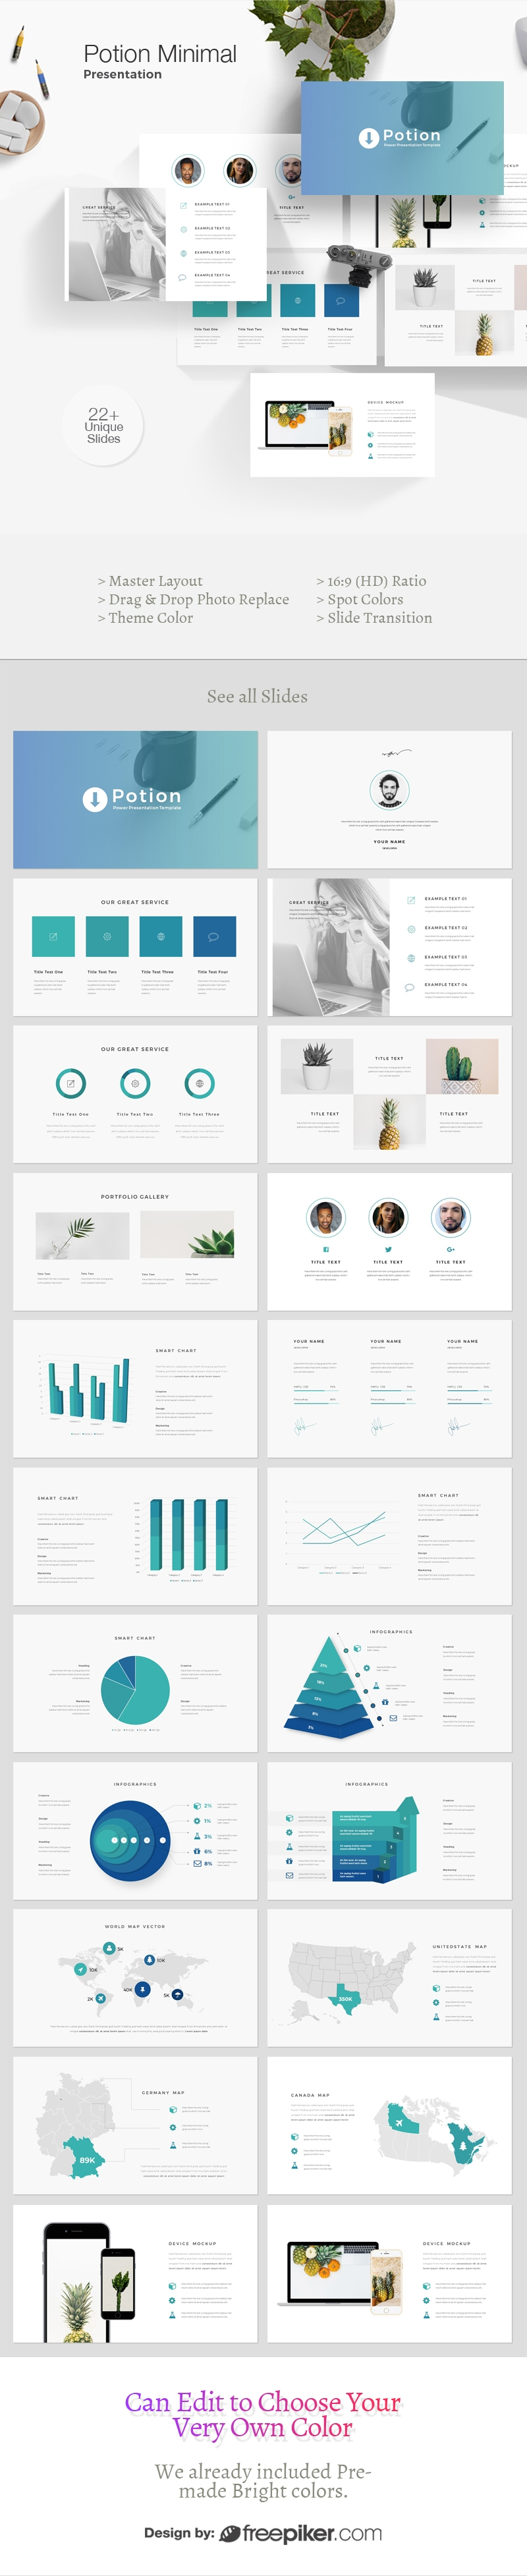 Potion Minimal Powerpoint Template